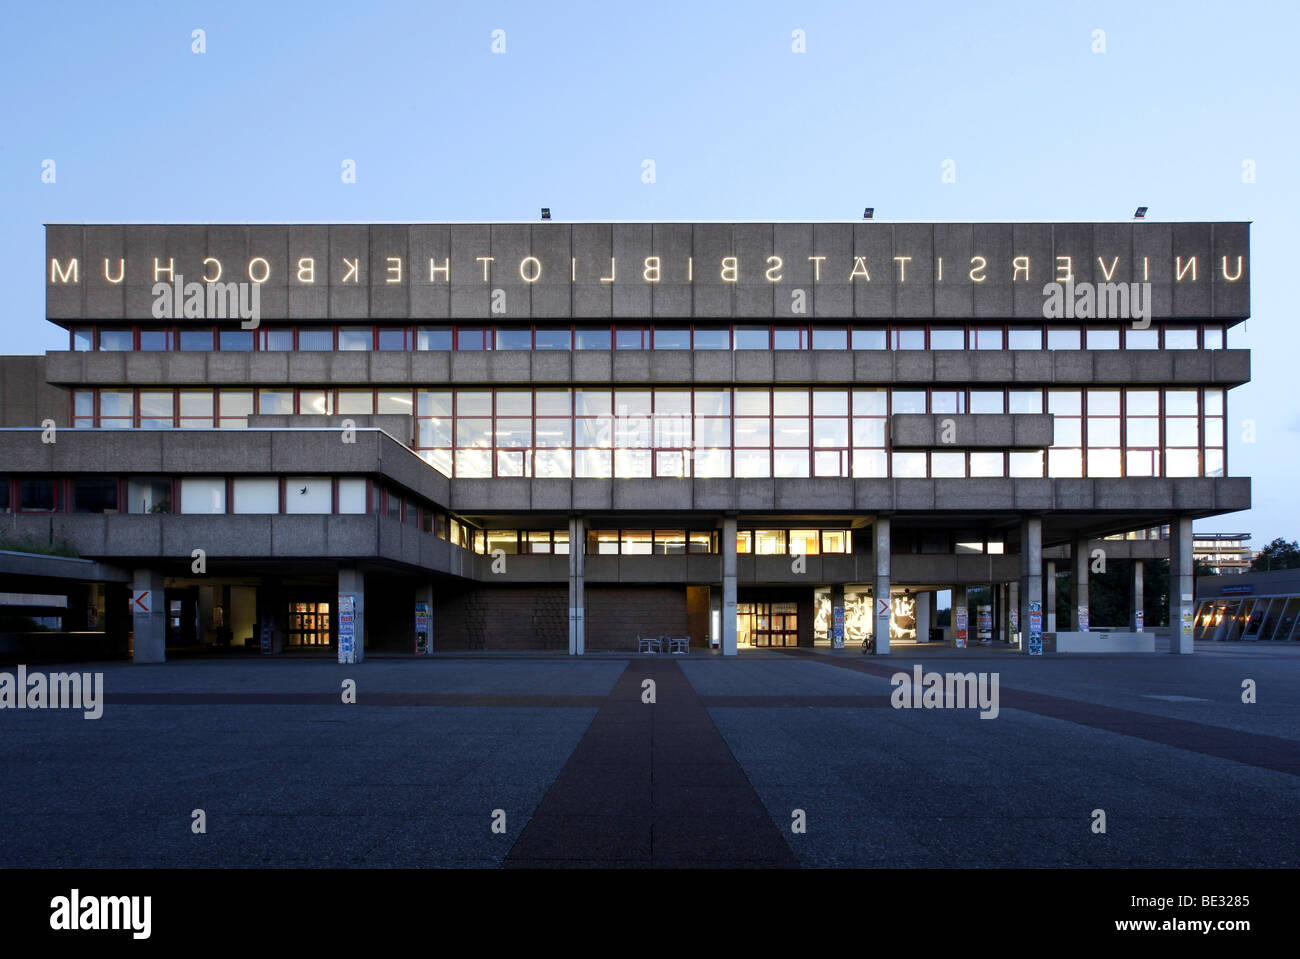 University Library of the Ruhr University Bochum, with mirrored lettering, Bochum, Ruhr, North Rhine-Westphalia, - Stock Image